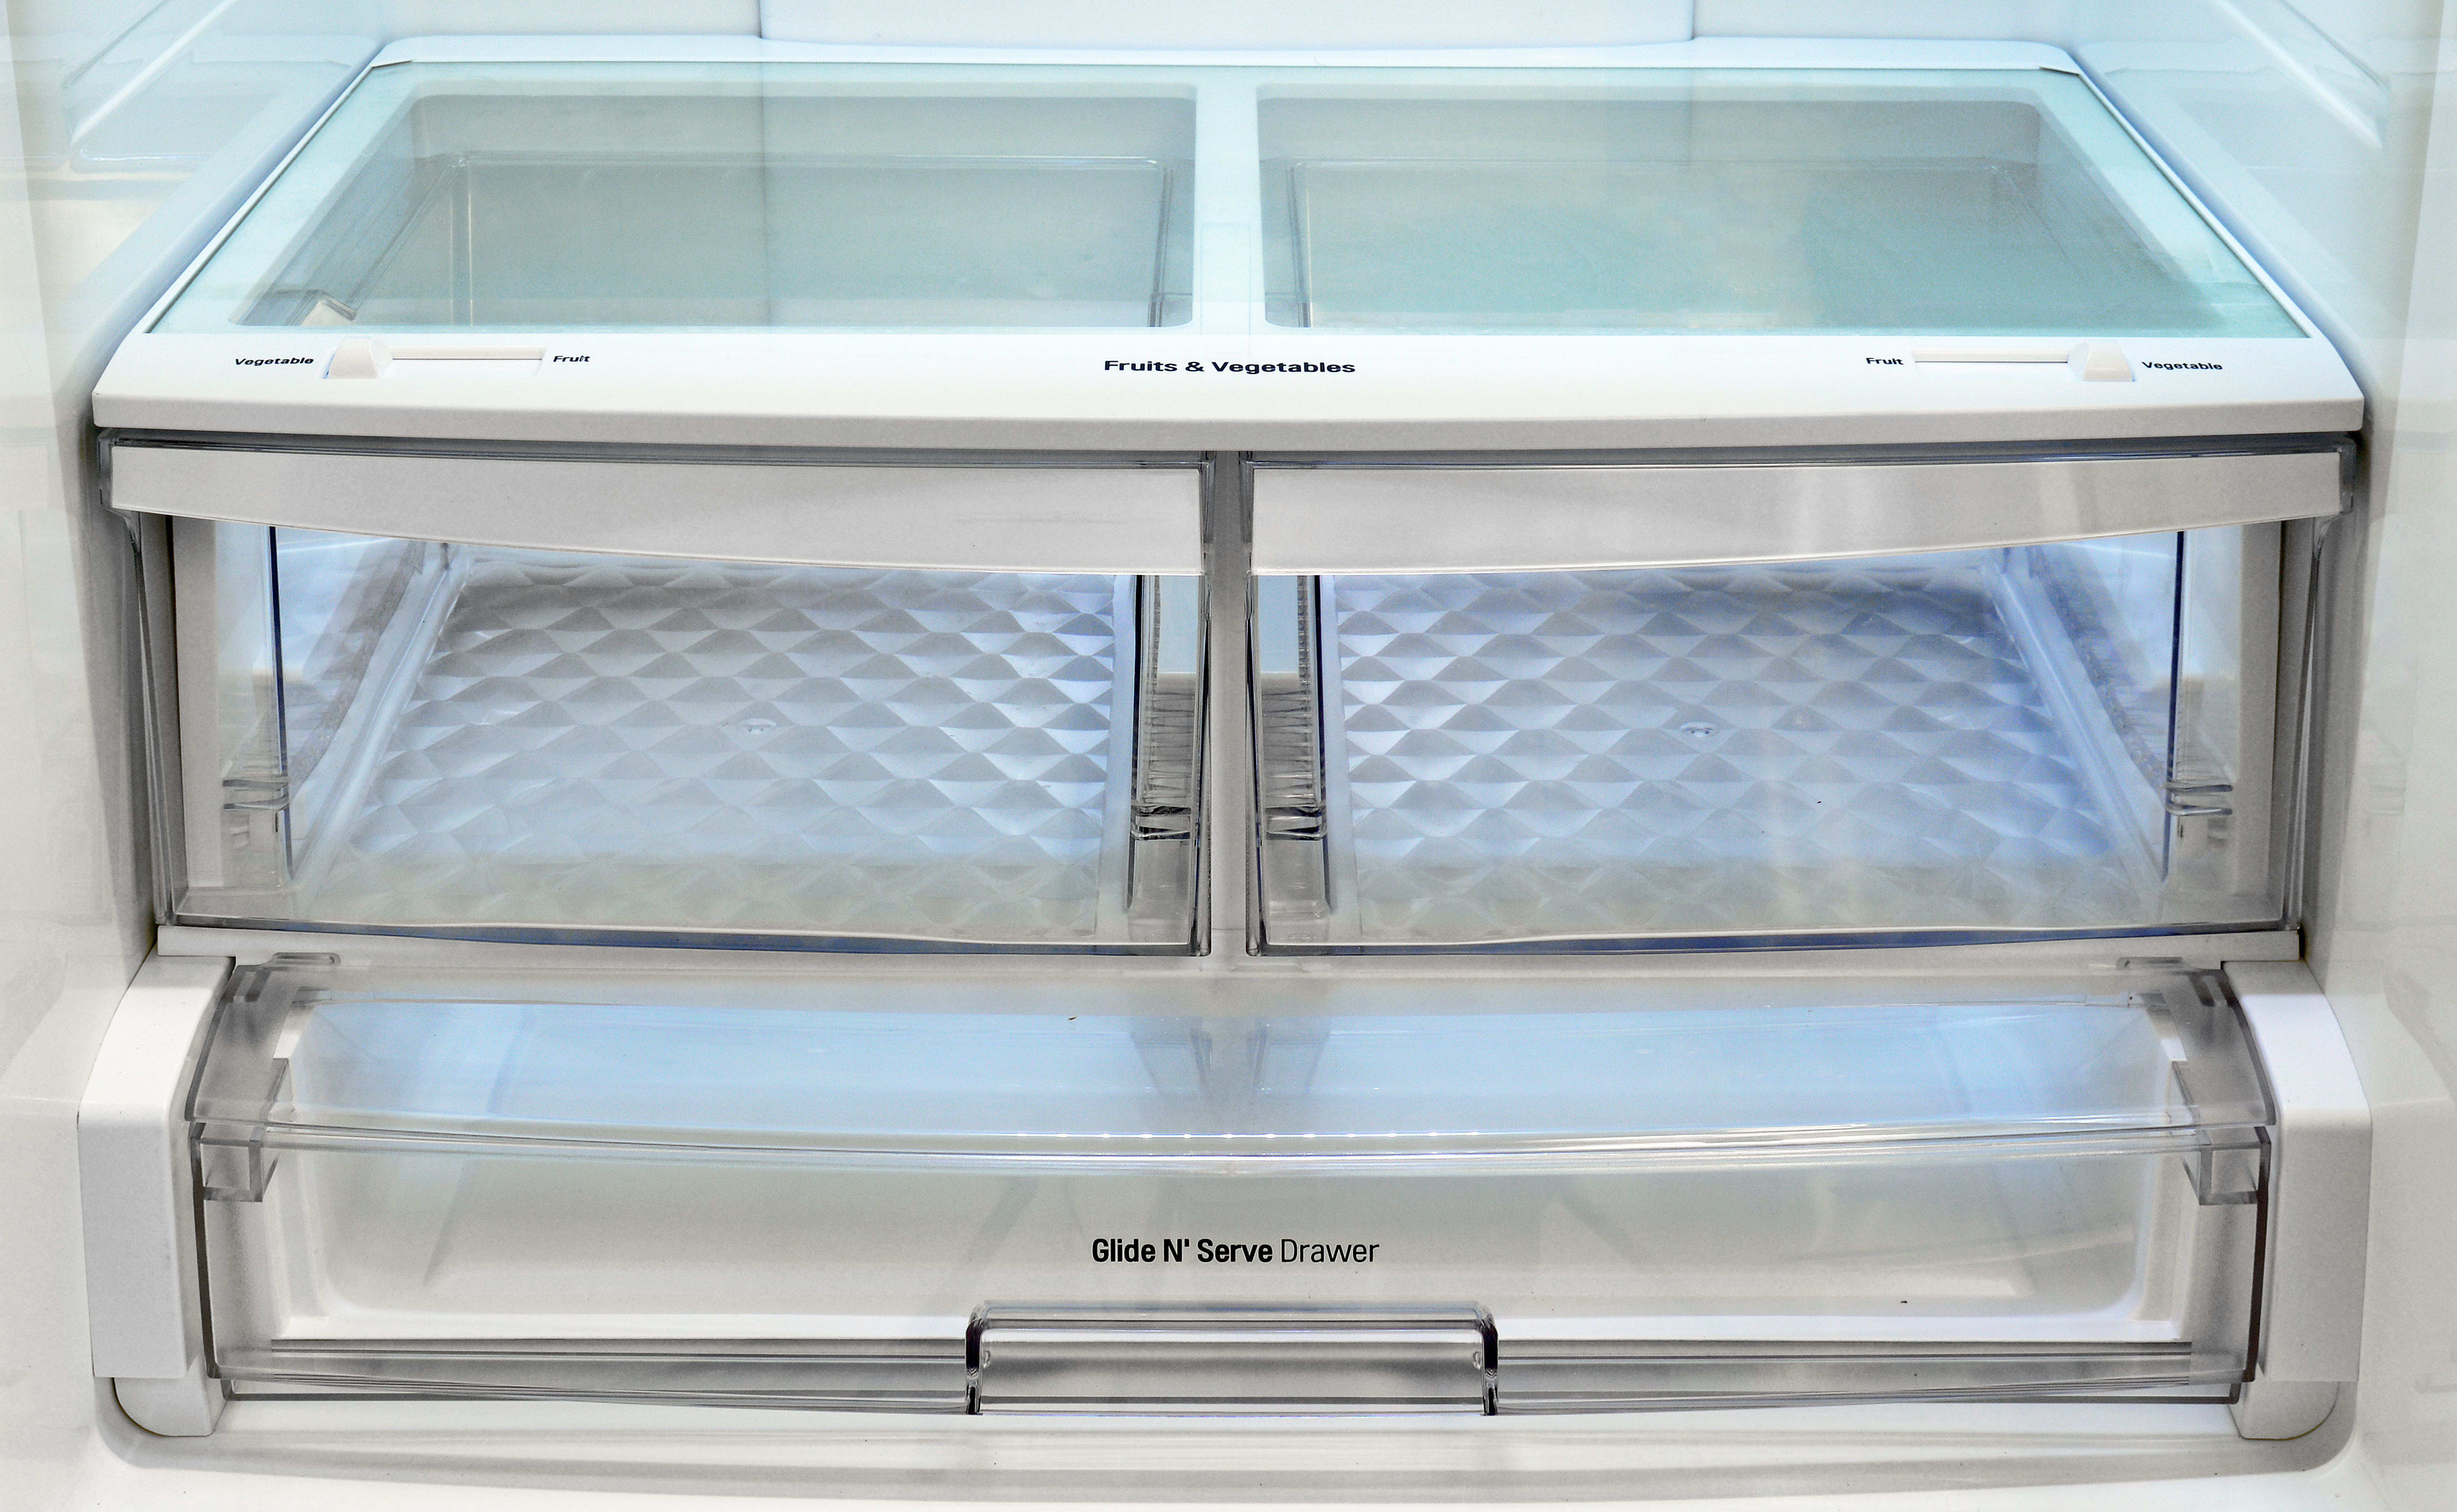 The LG LDC24370ST's crispers slide open with ease, but aren't great at retaining moisture.